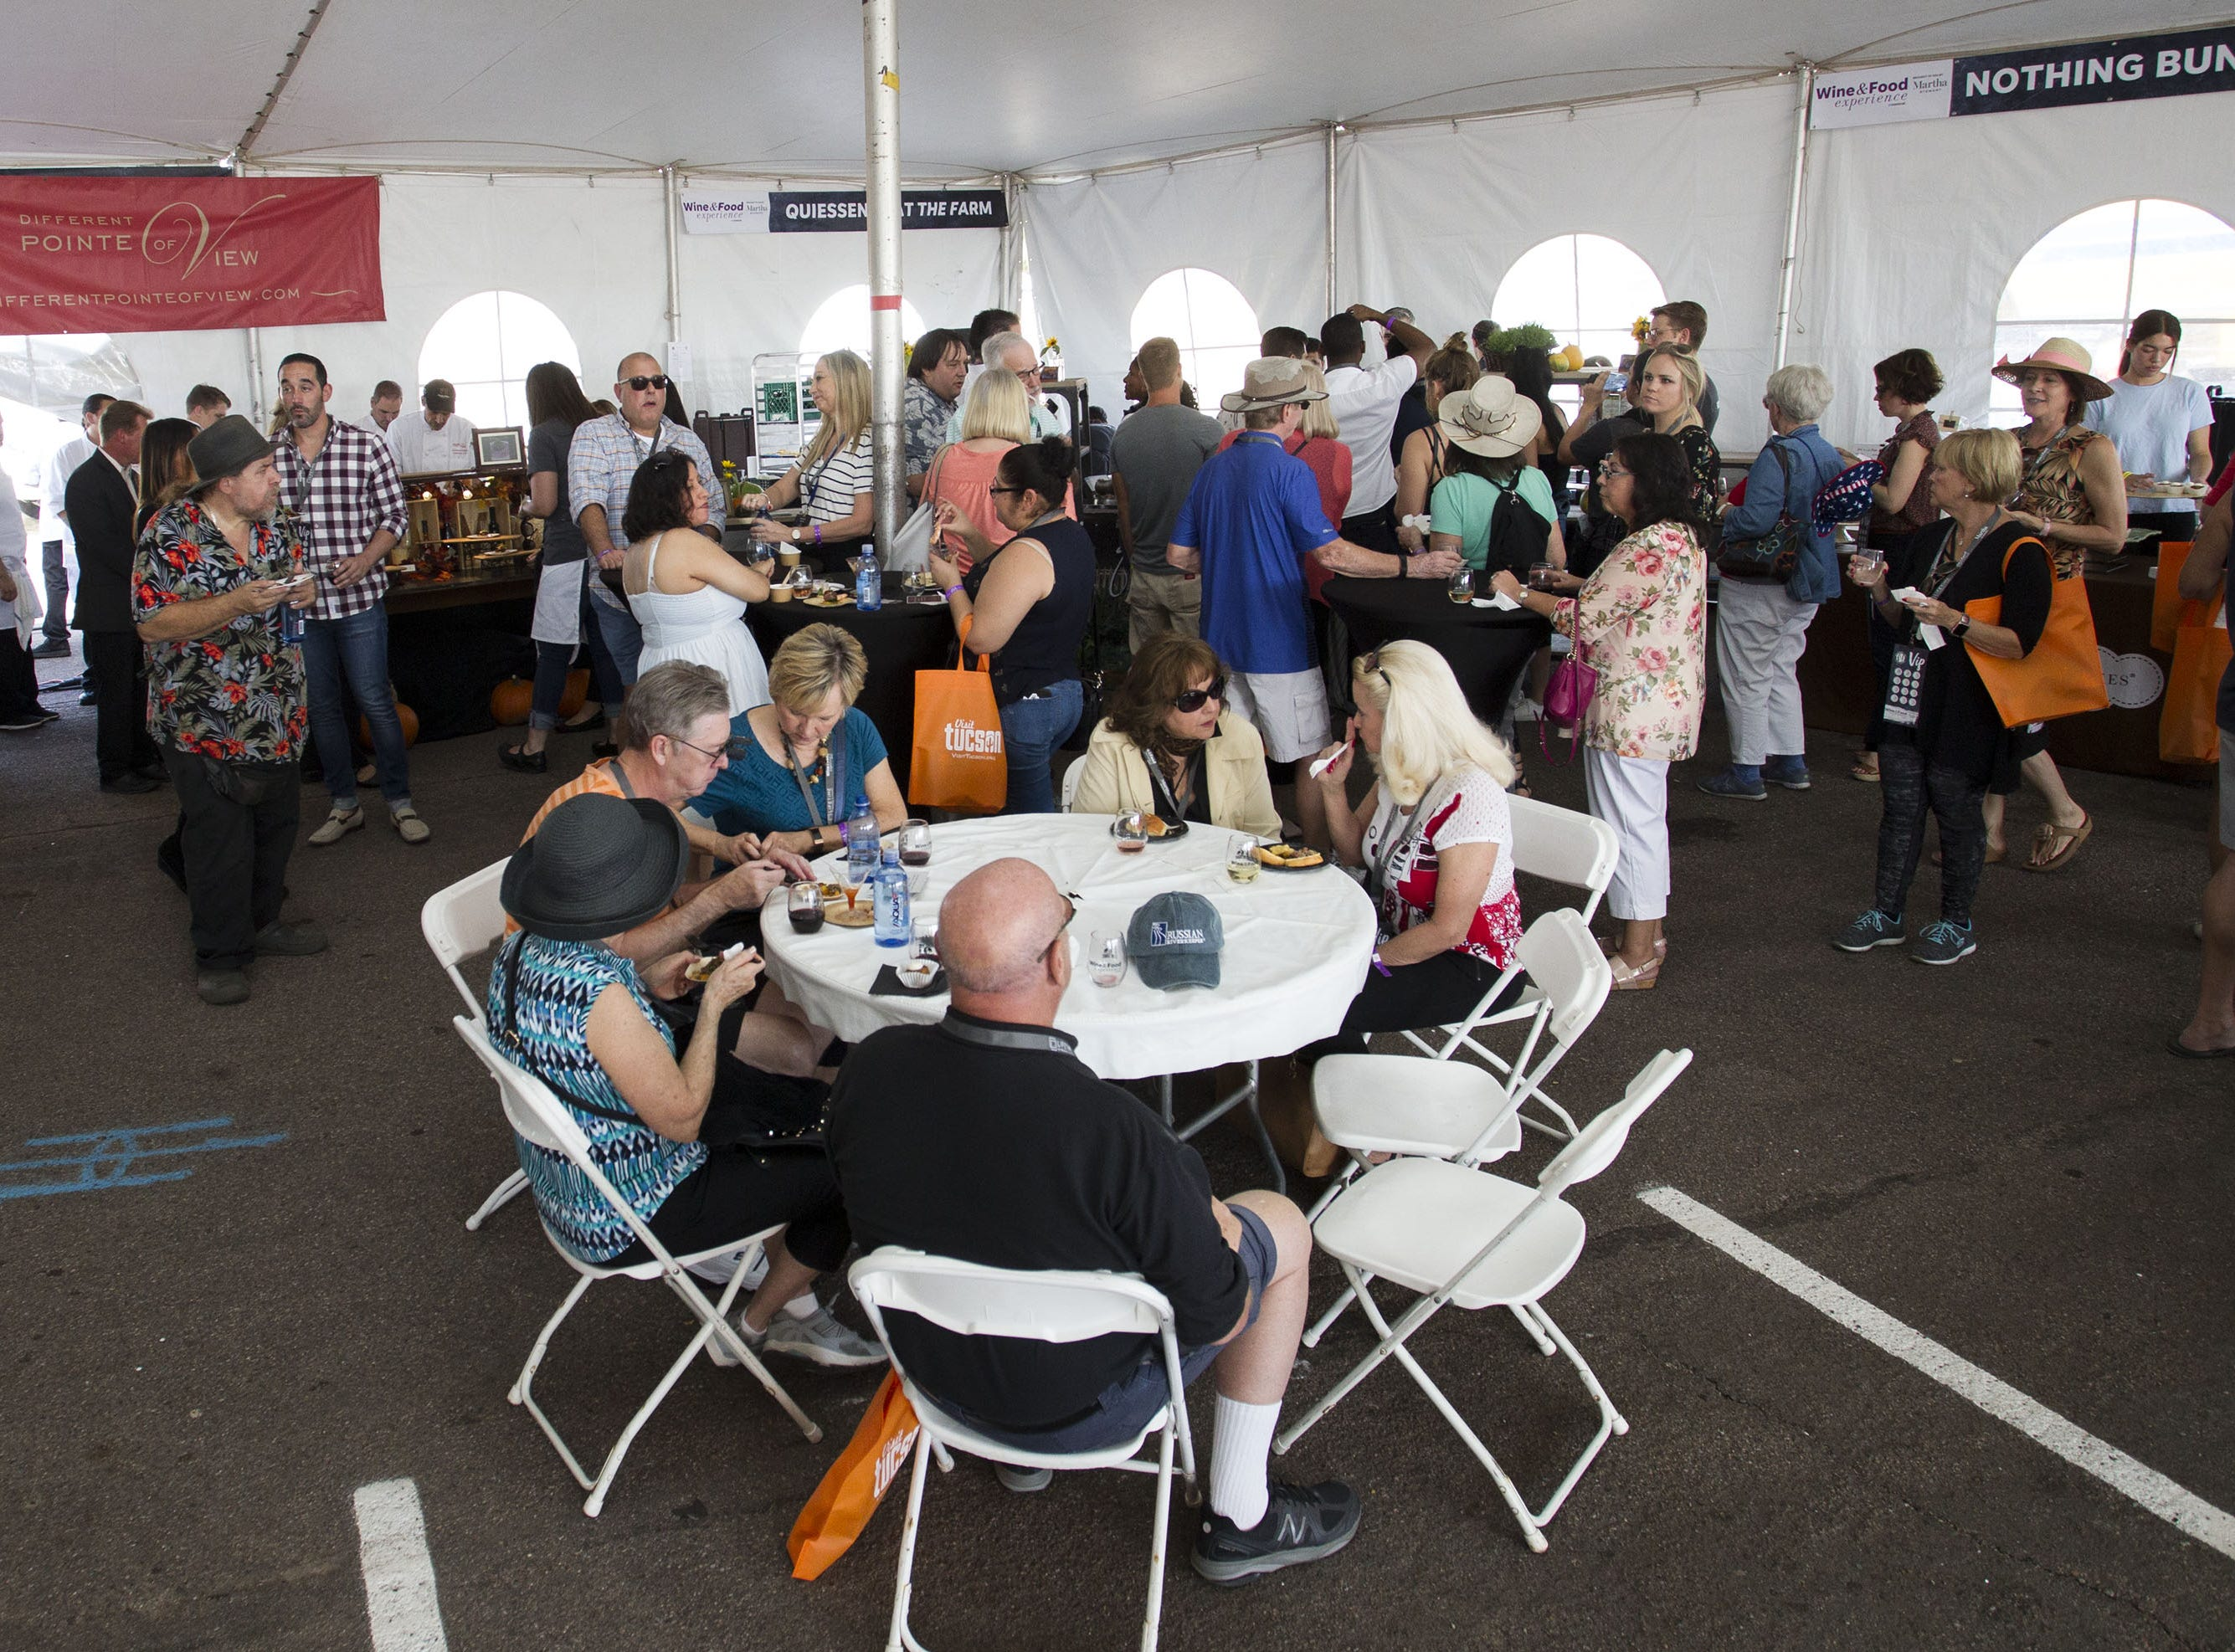 Fans enjoy the festivities during the azcentral Wine & Food Experience at WestWorld of Scottsdale.Darryl Webb/Special for The Republic) #azwfe @azcentral #azcthingstodo